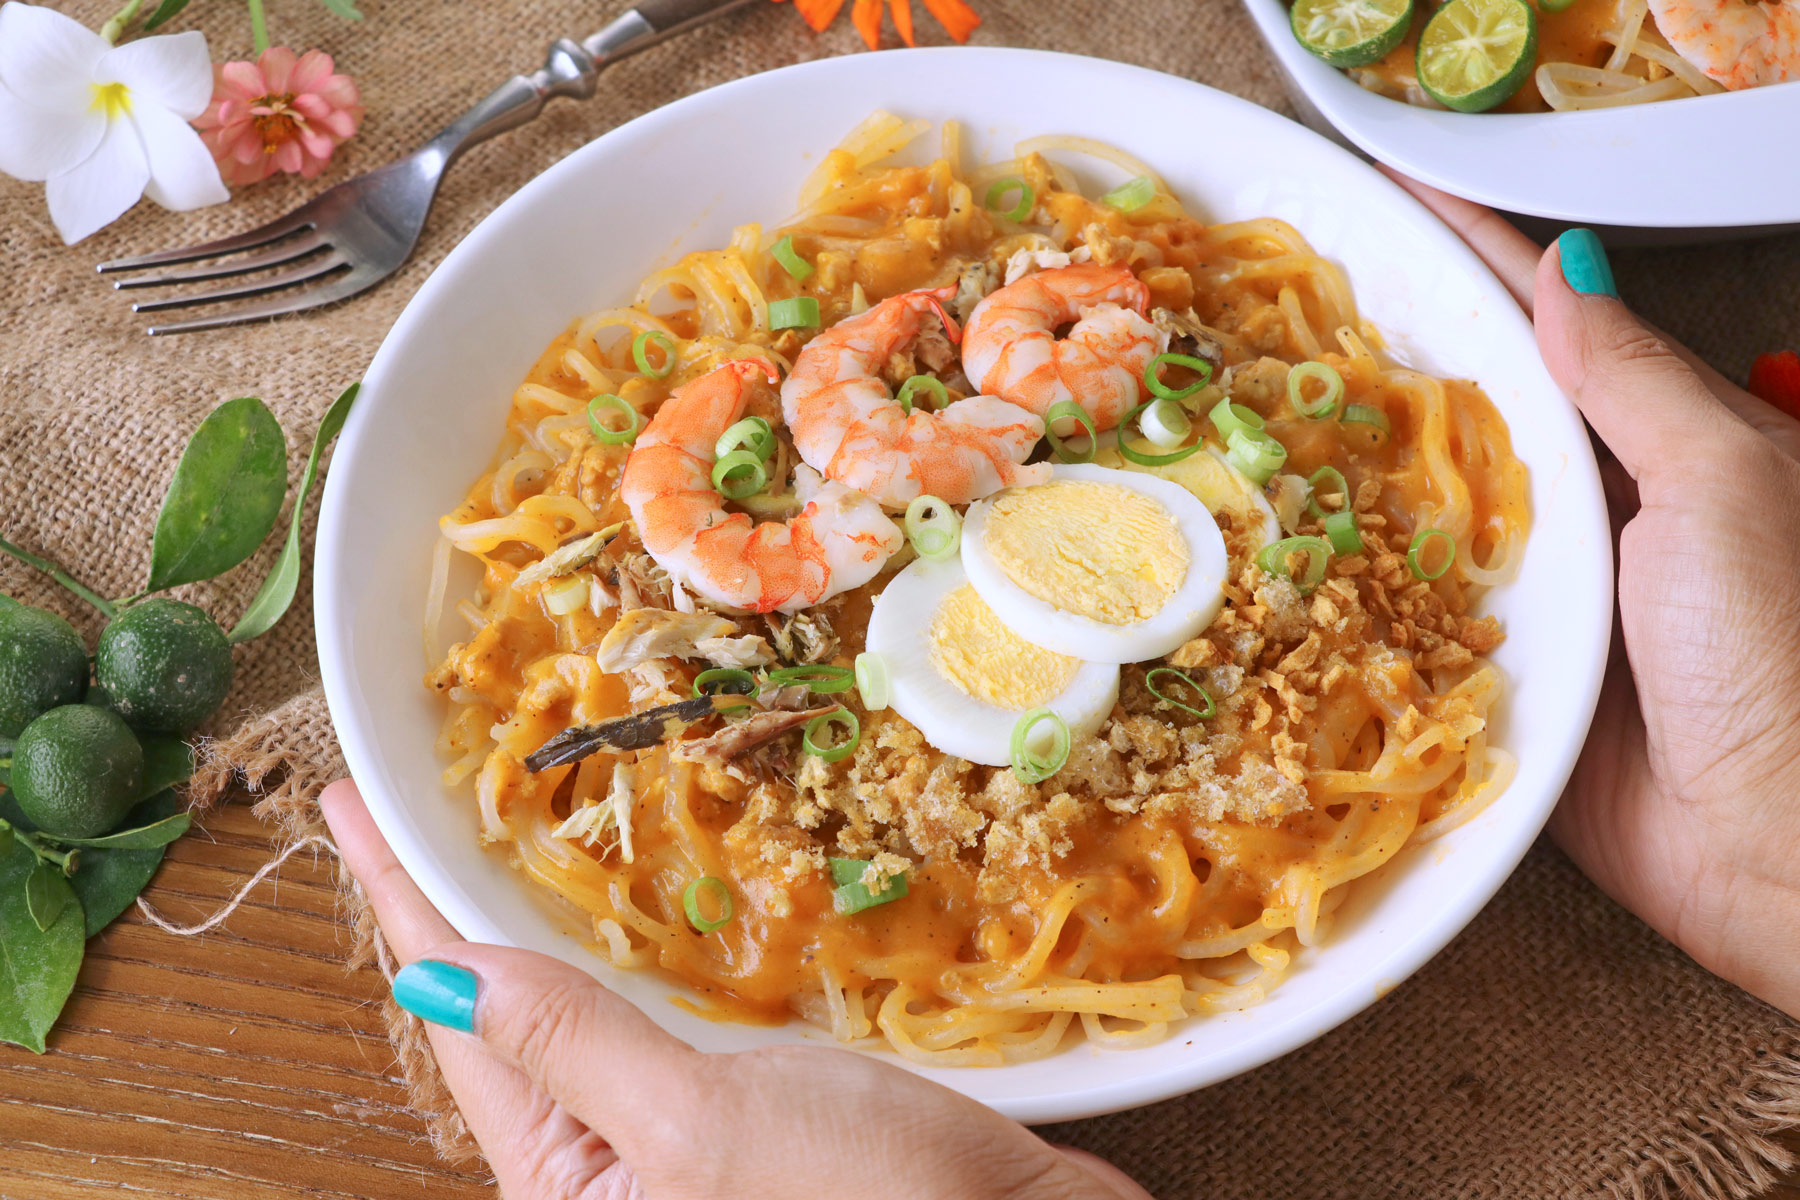 Rice noodle with savory yellow-orange sauce, shrimp and eggs